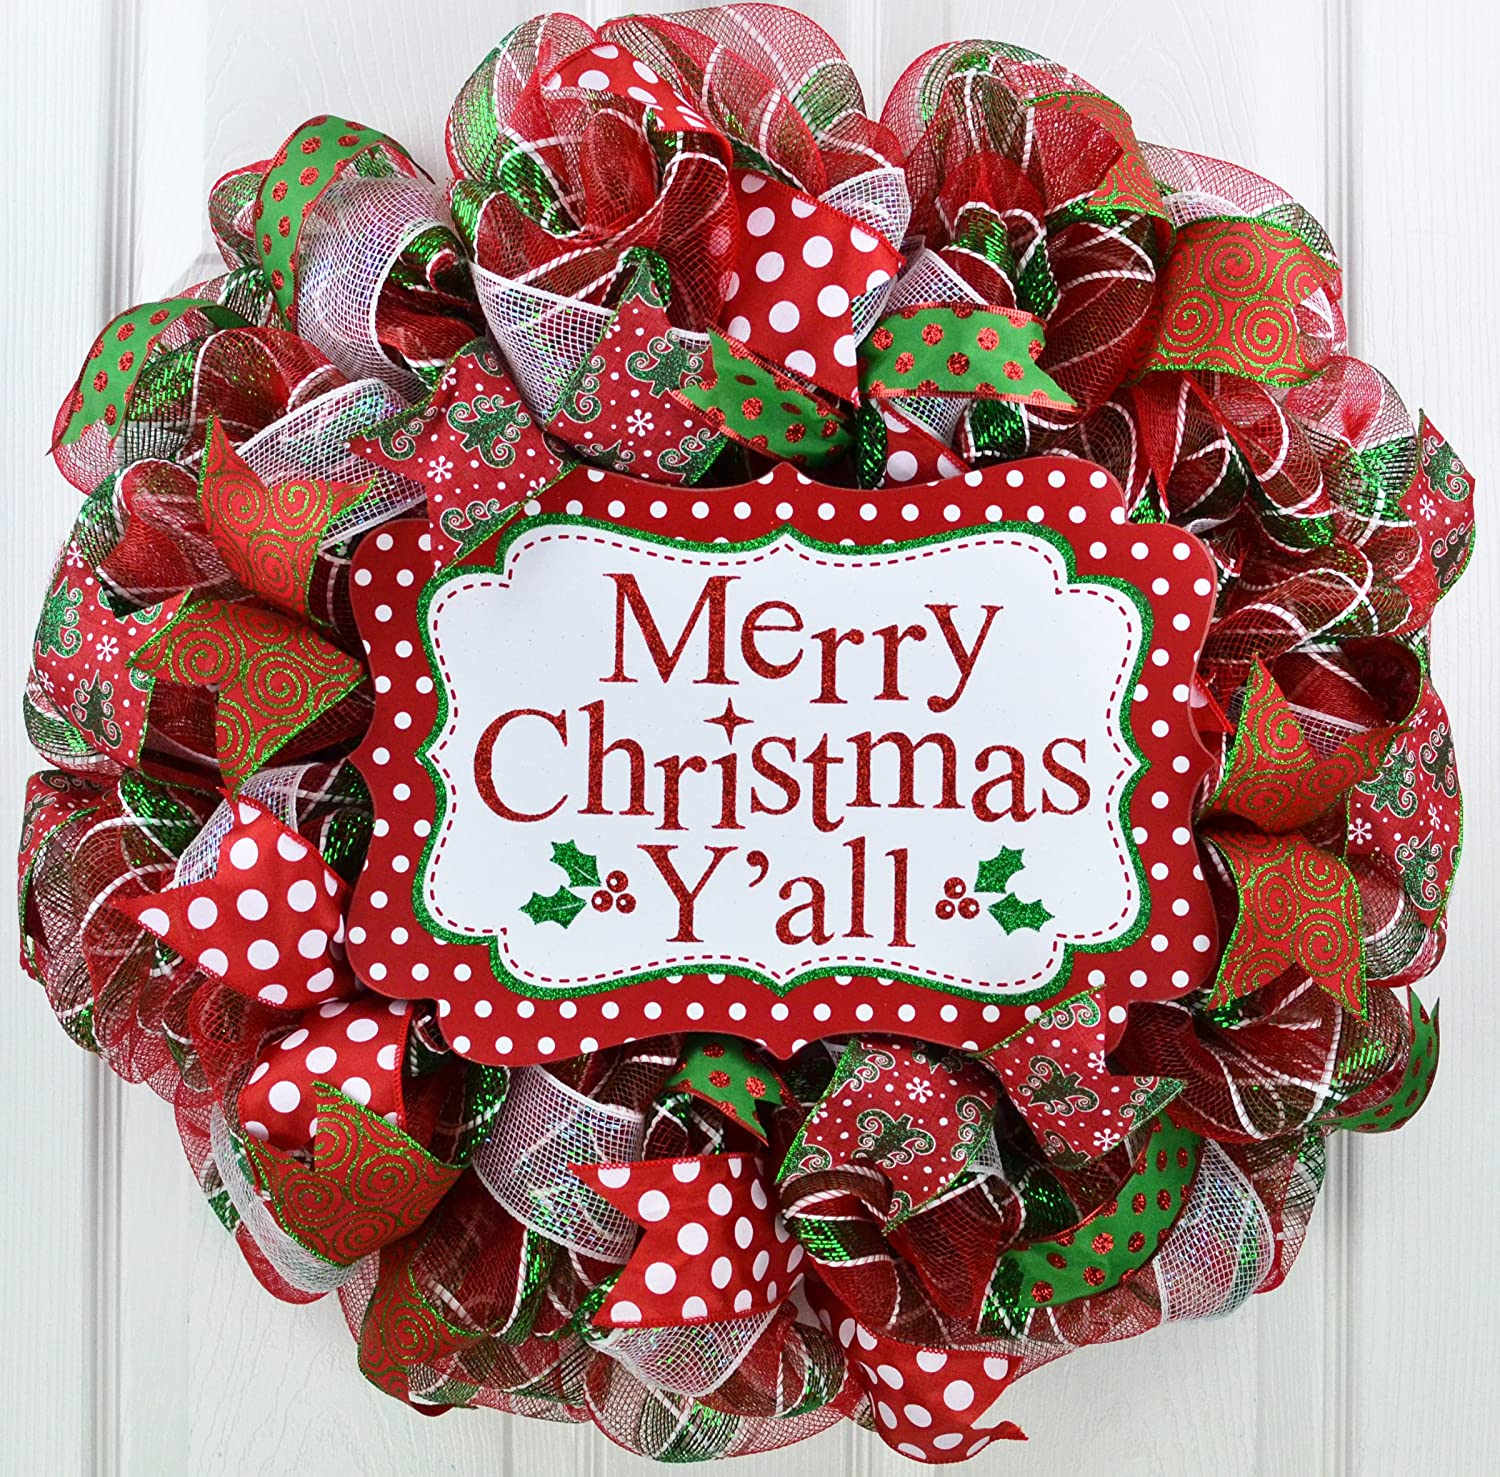 Red And White Christmas Wreath.Merry Christmas Wreath Merry Christmas Y All Mesh Front Door Wreath Red Green White